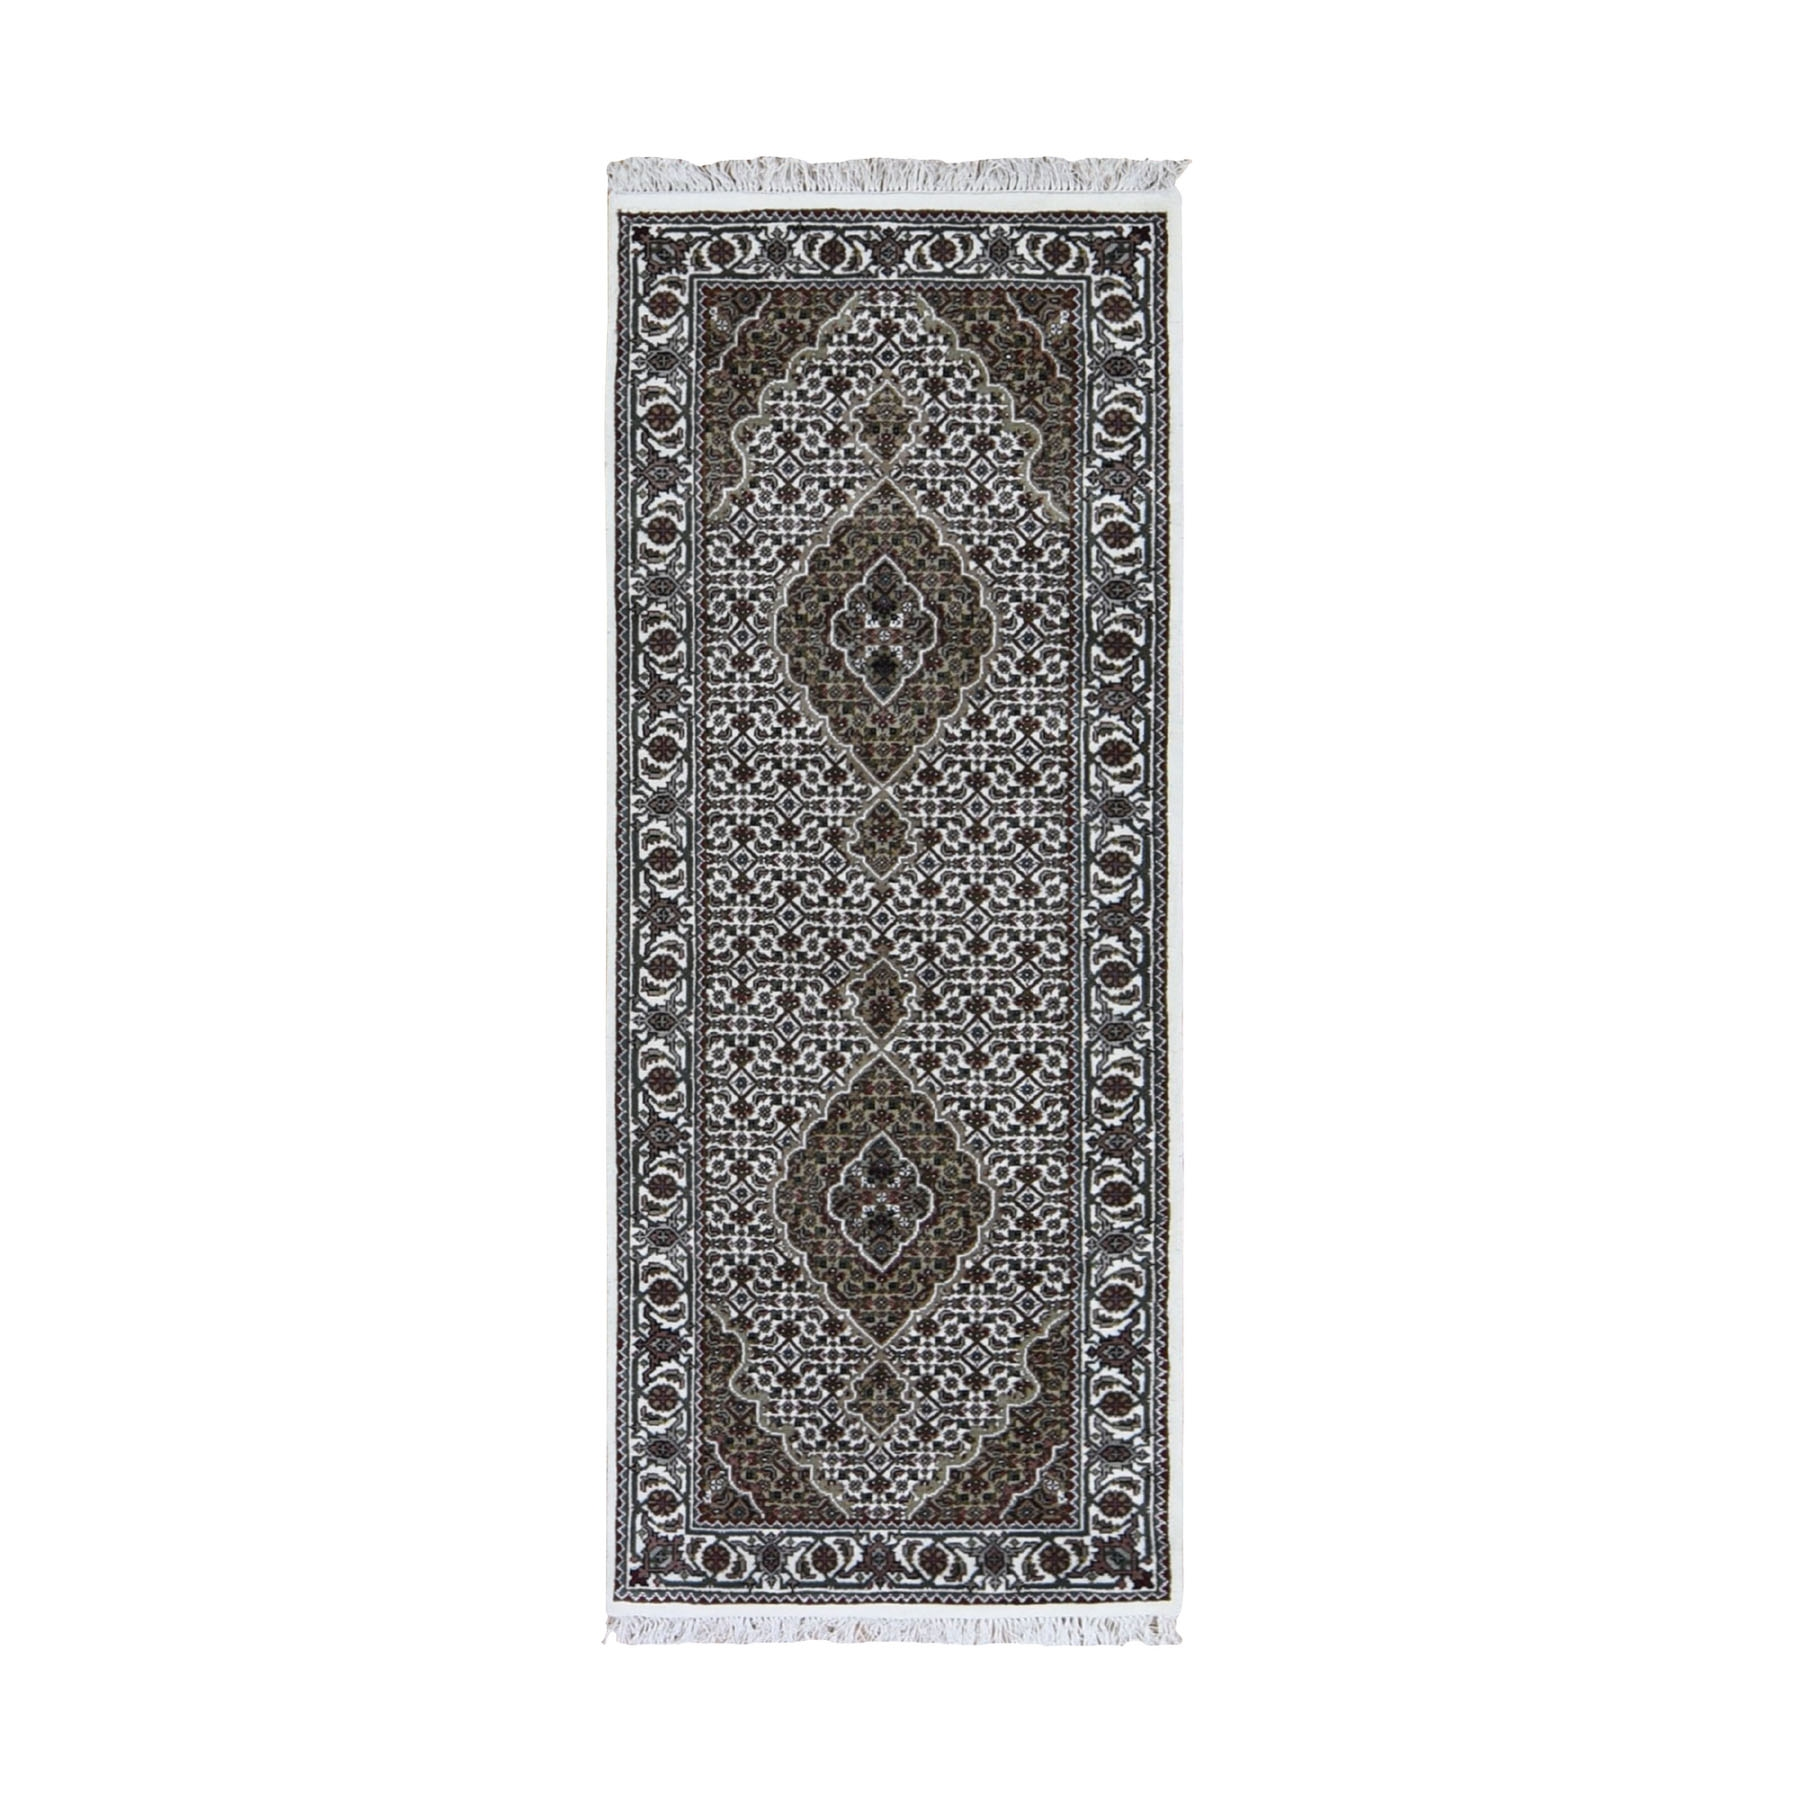 Pirniakan Collection Hand Knotted Ivory Rug No: 0199042